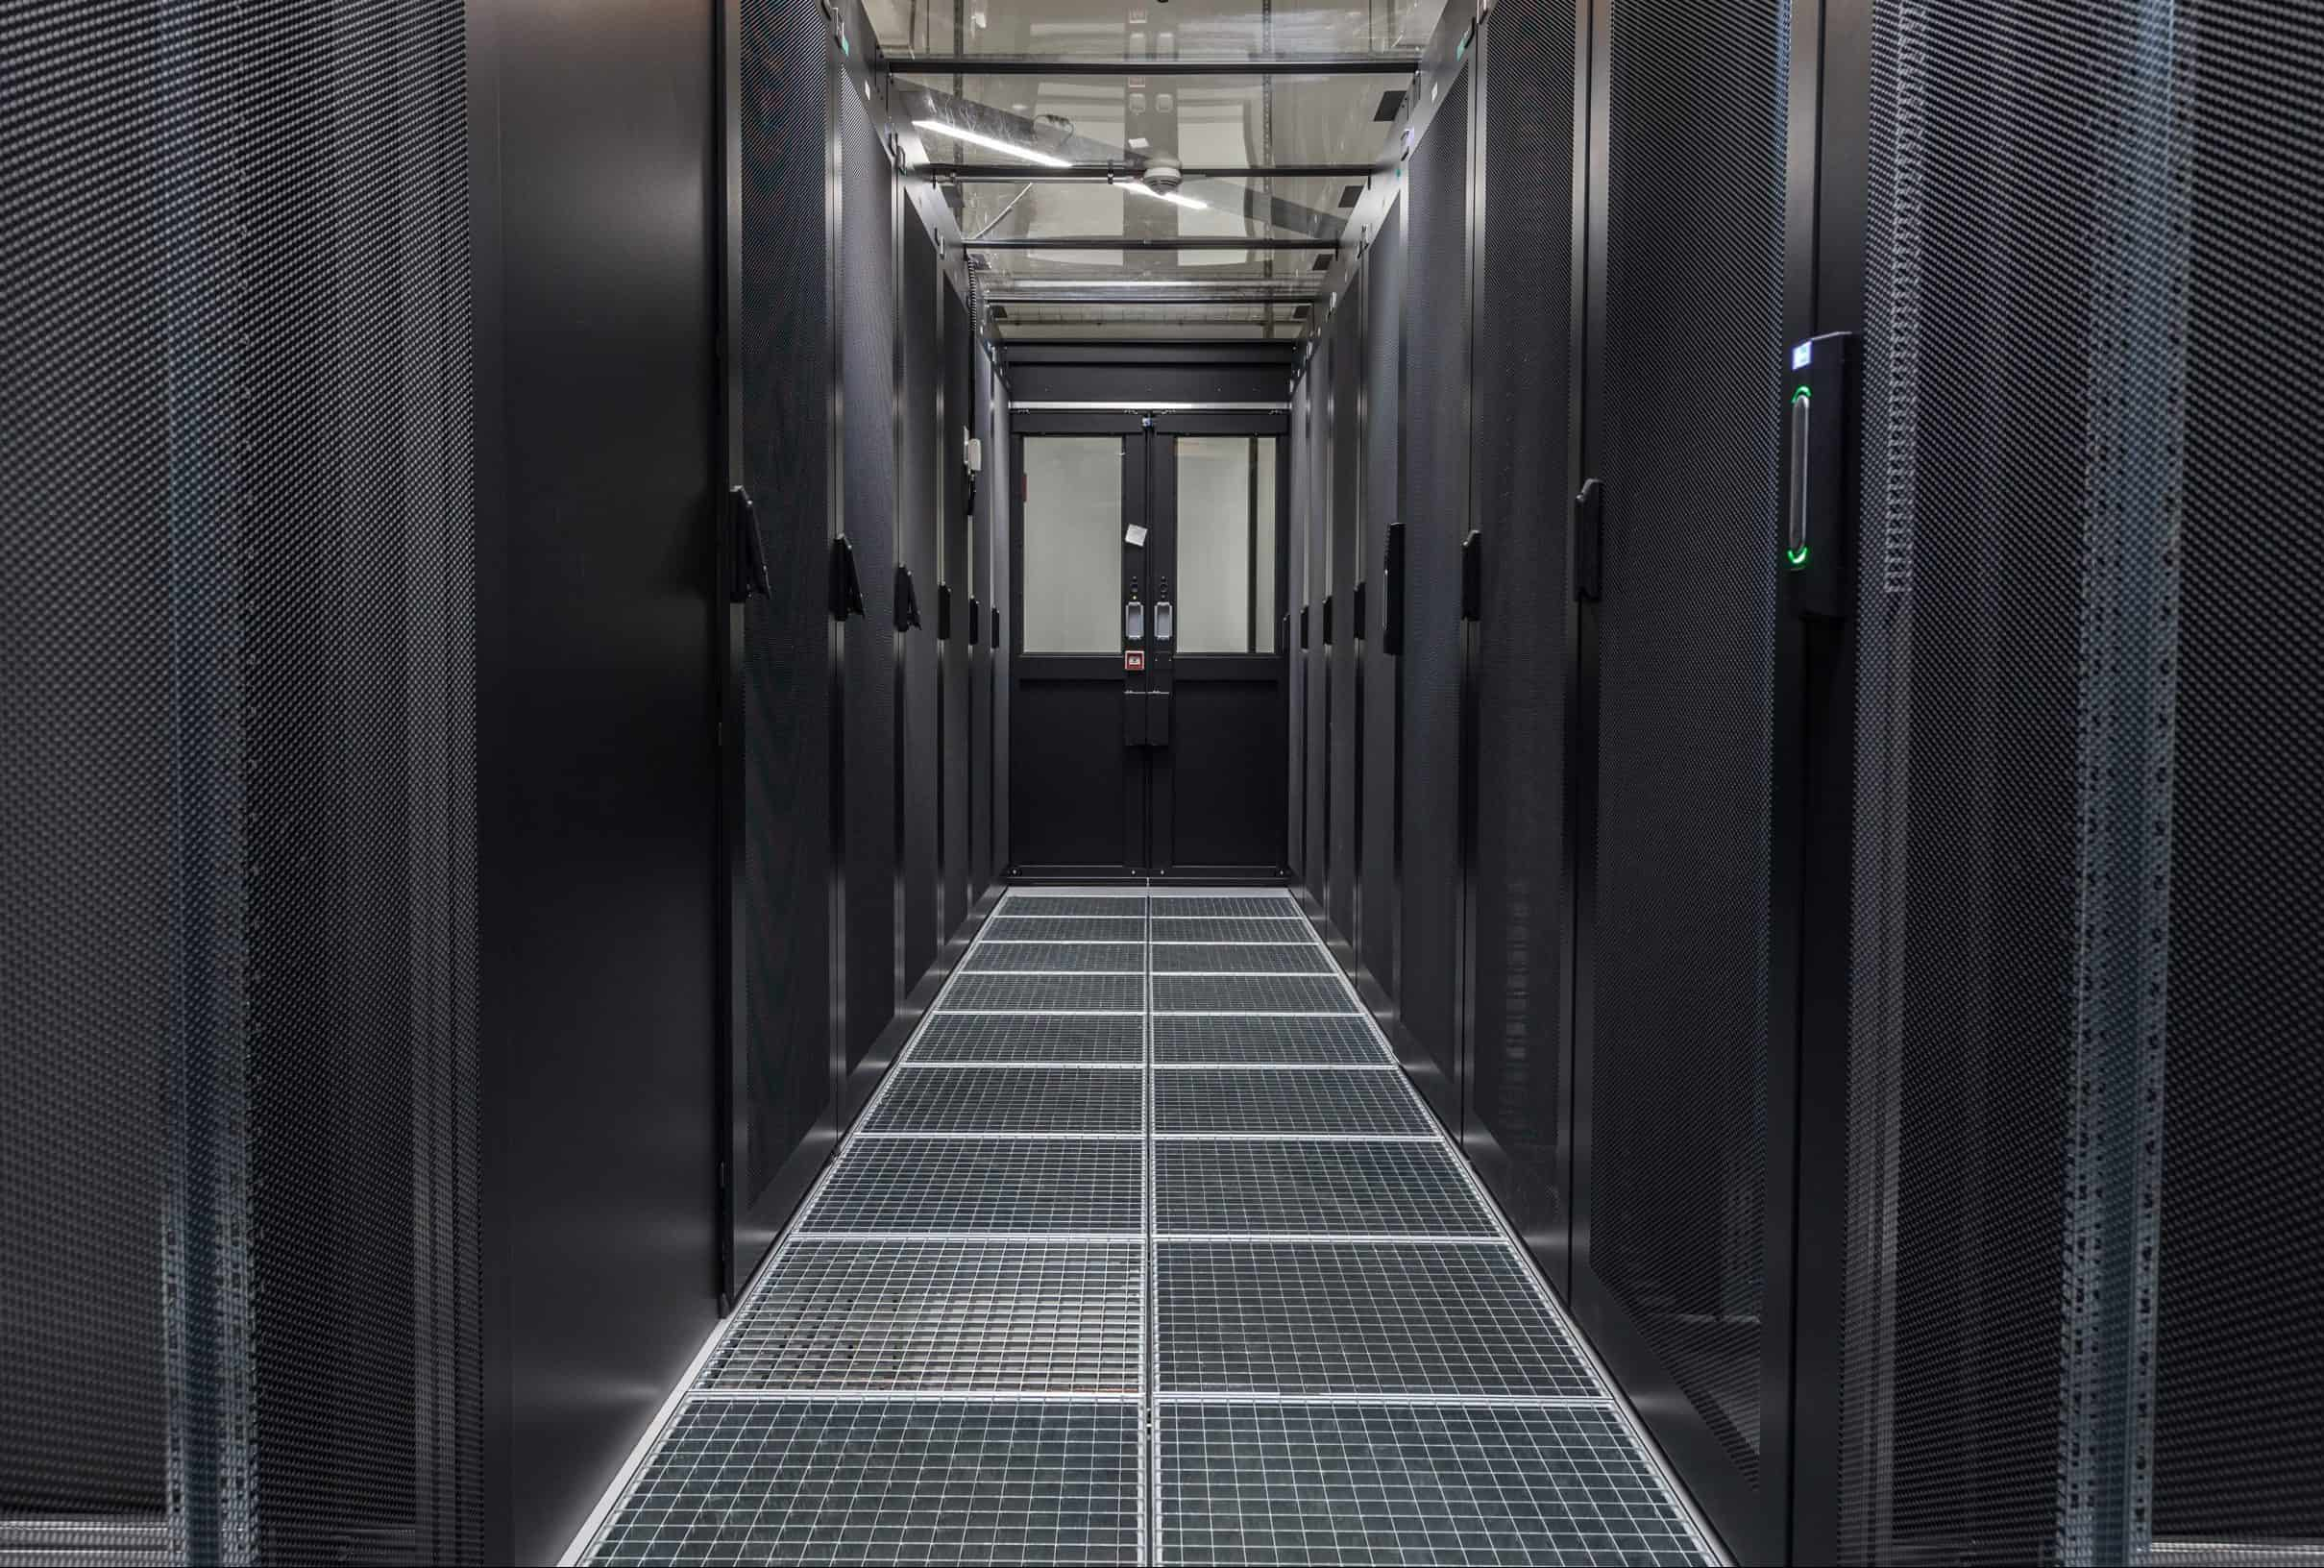 Full-lifecycle data center security solutions